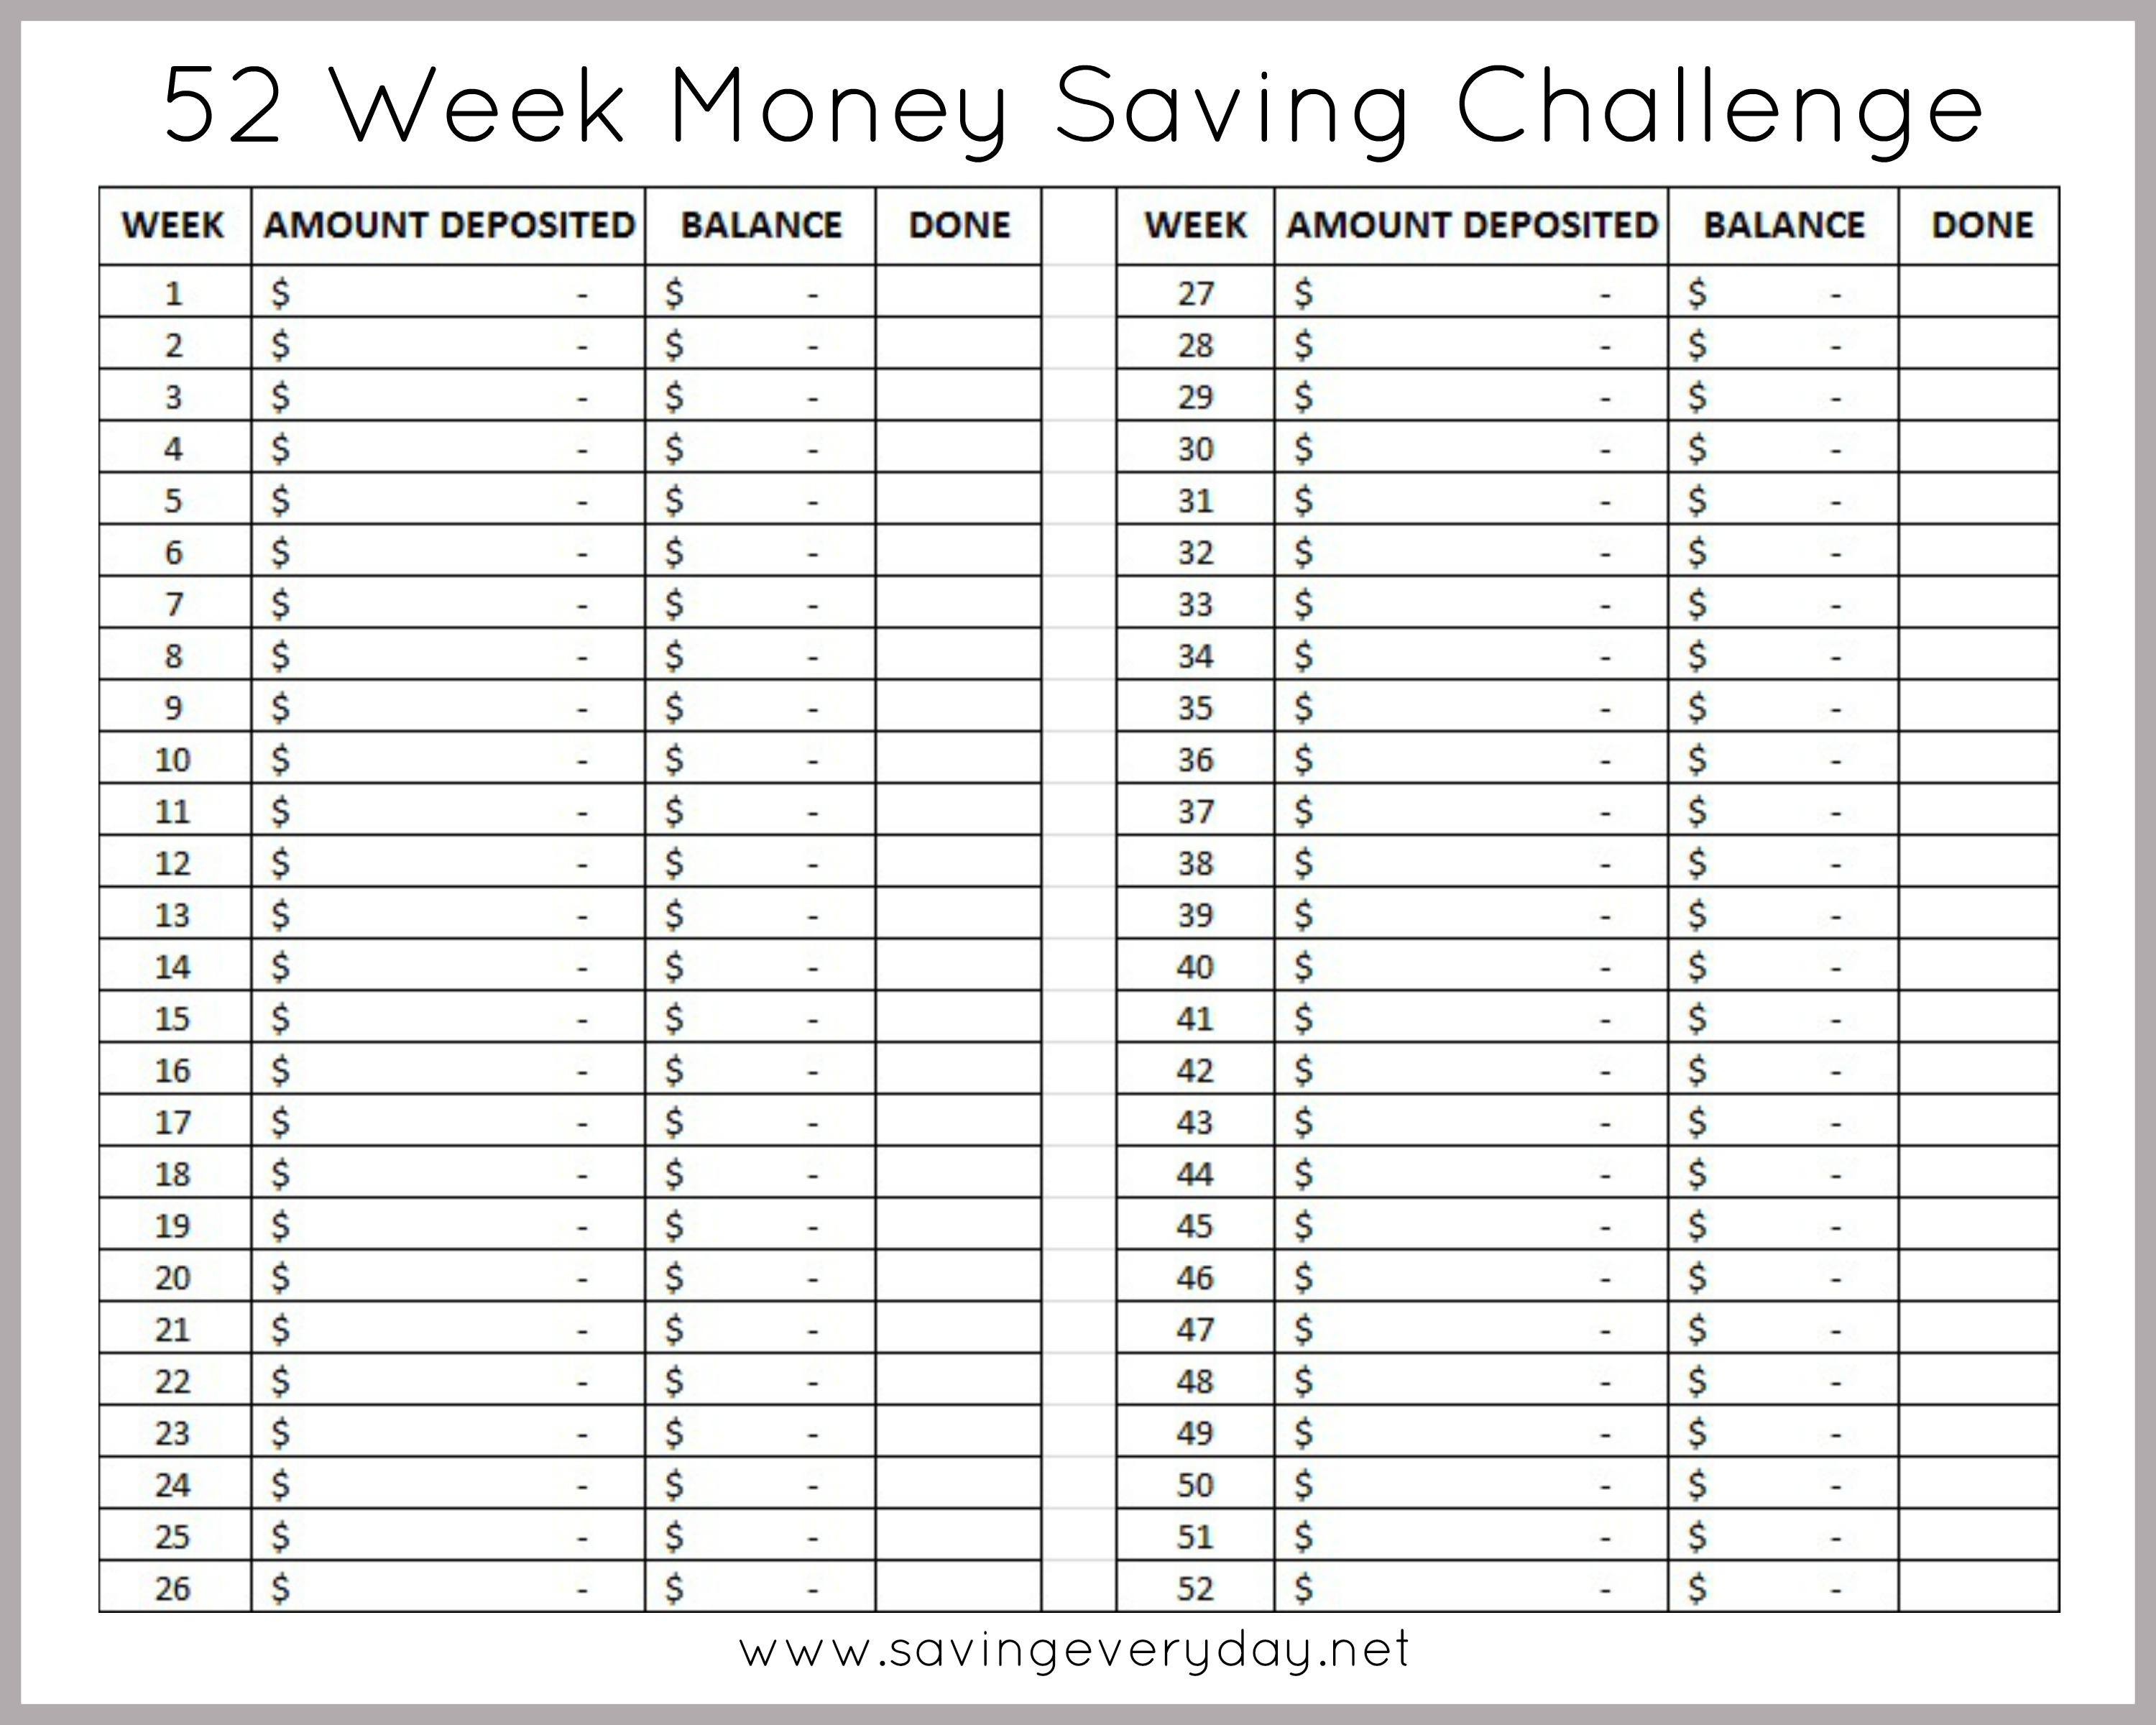 52 Week Money Saving Challenge Printable Sheet